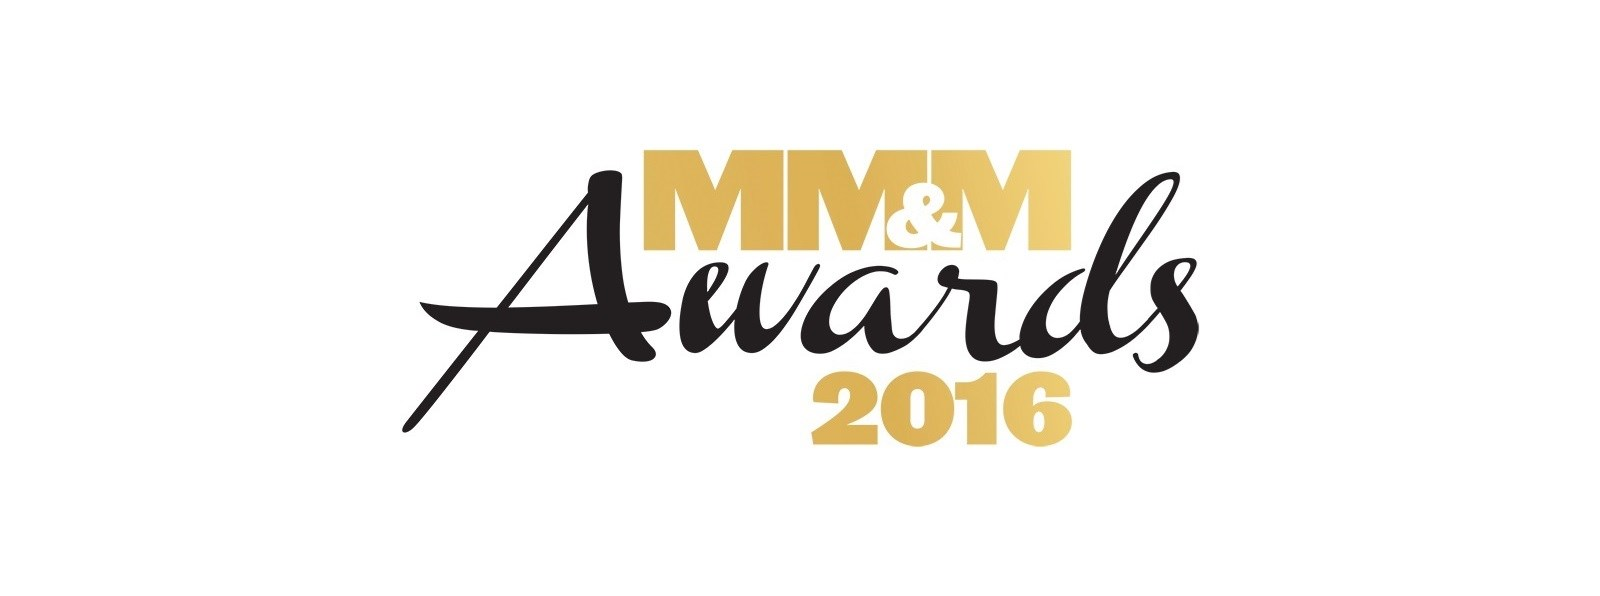 Are you a finalist in the MM&M Awards? Find out now